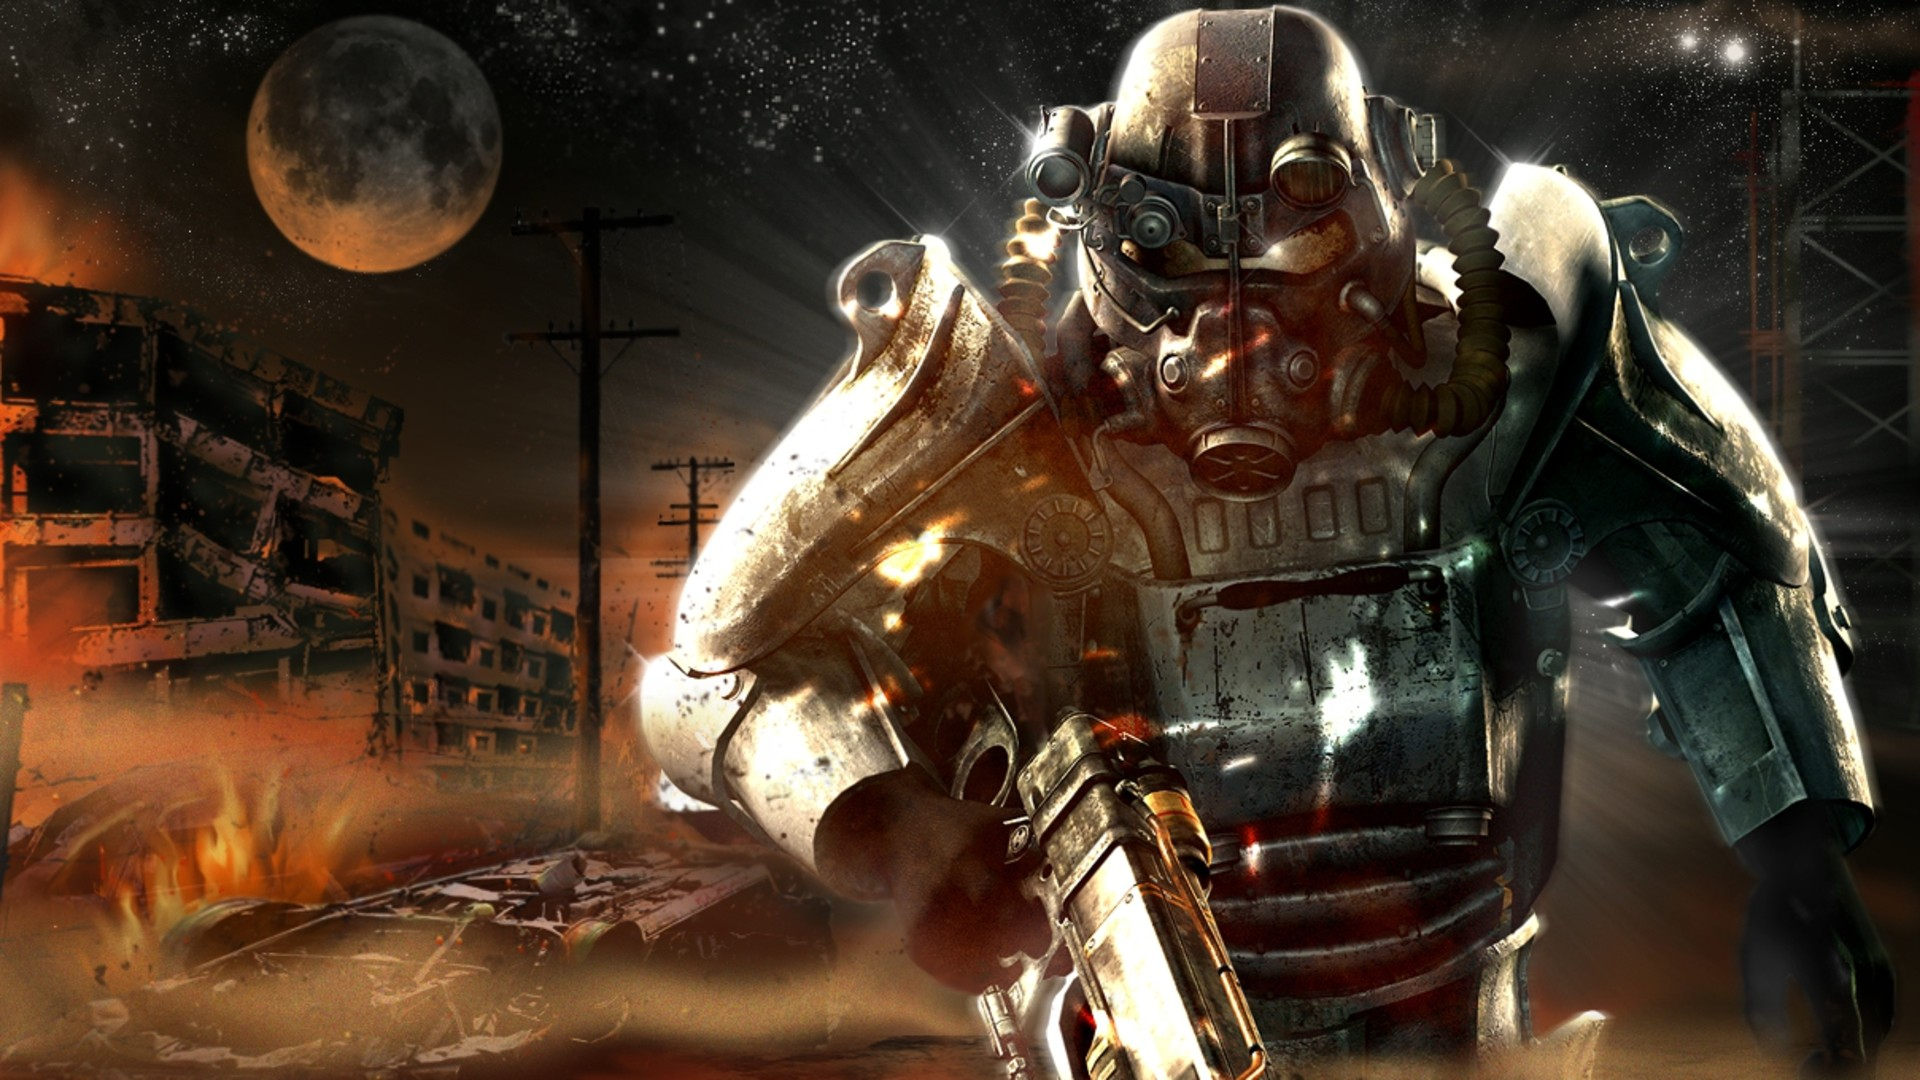 Fallout 4 Background For Desktop Wallpaper 1920 x 1080 px 623.08 KB pipboy  iphone 3 4